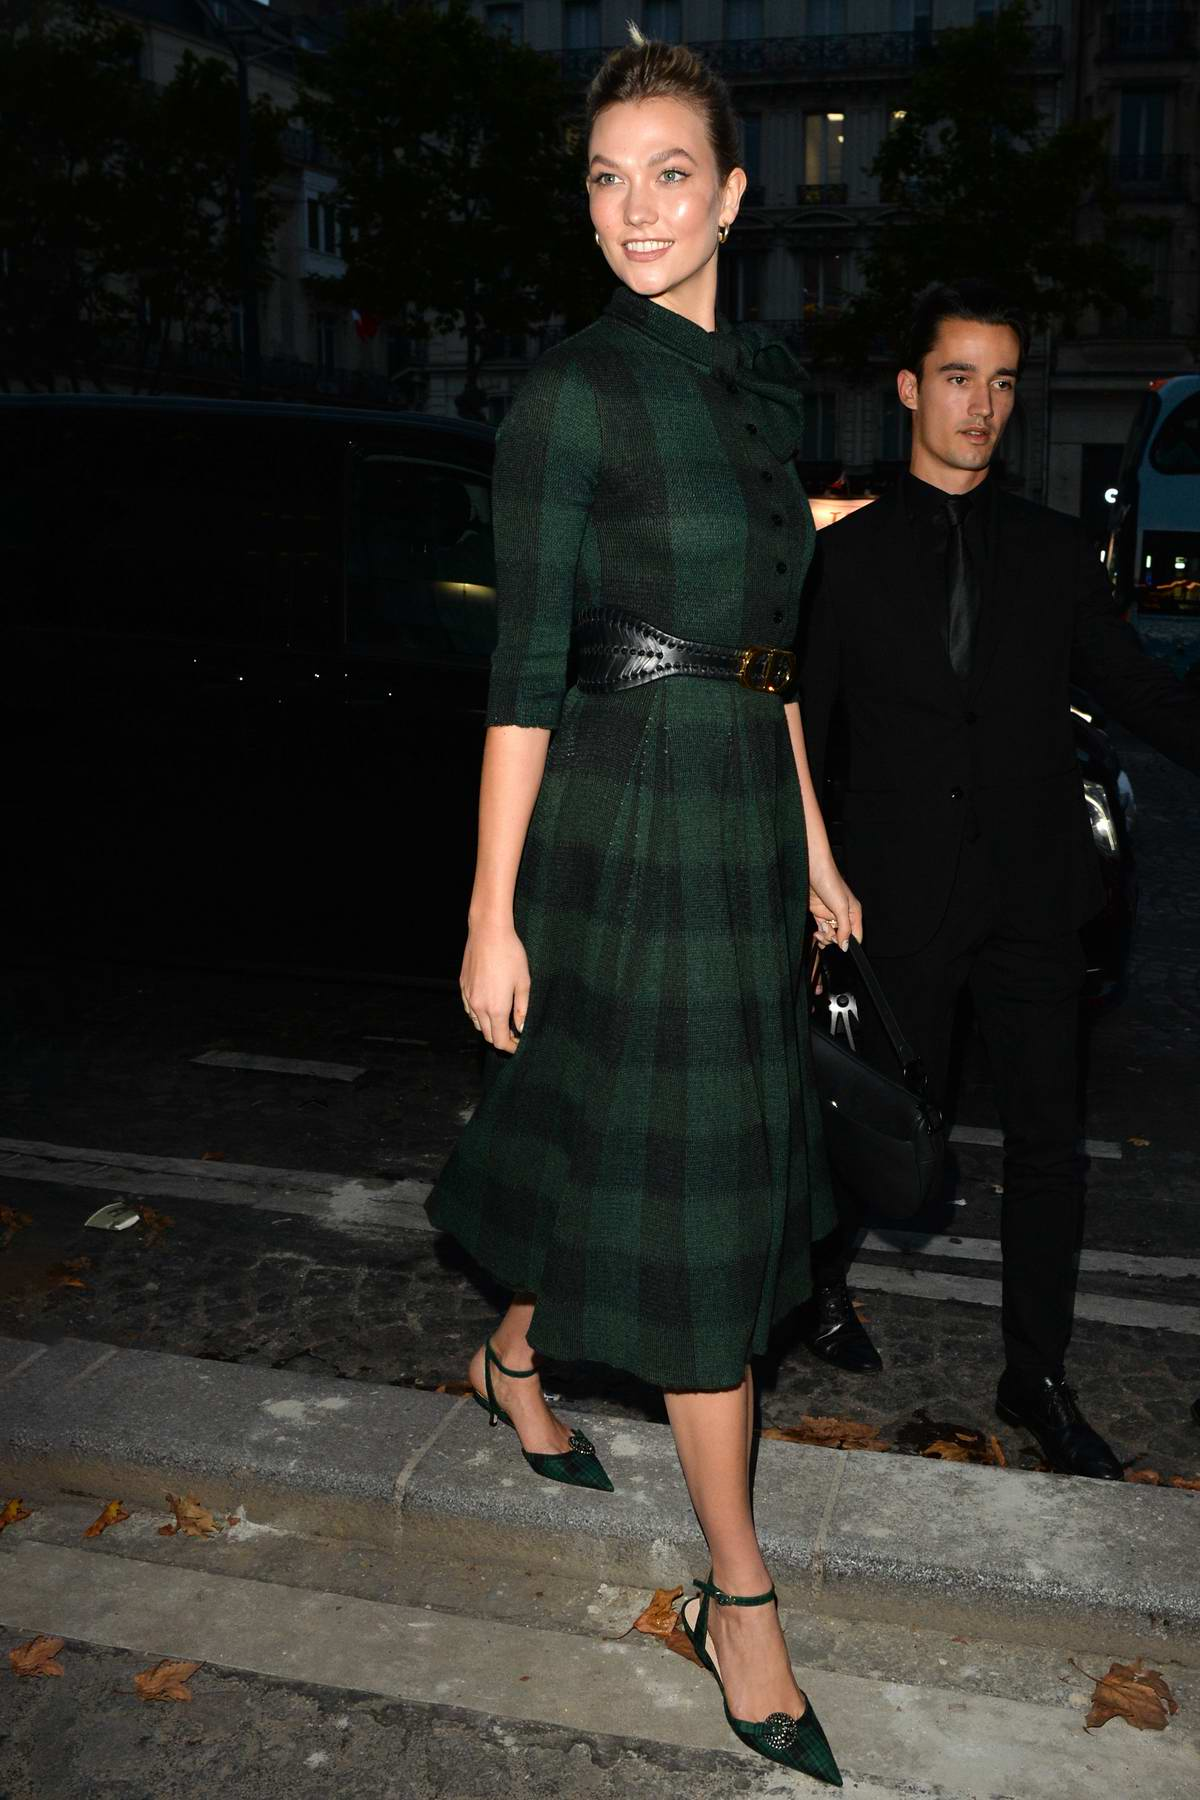 Karlie Kloss is all smiles while out wearing a green and black plaid dress in Paris, France